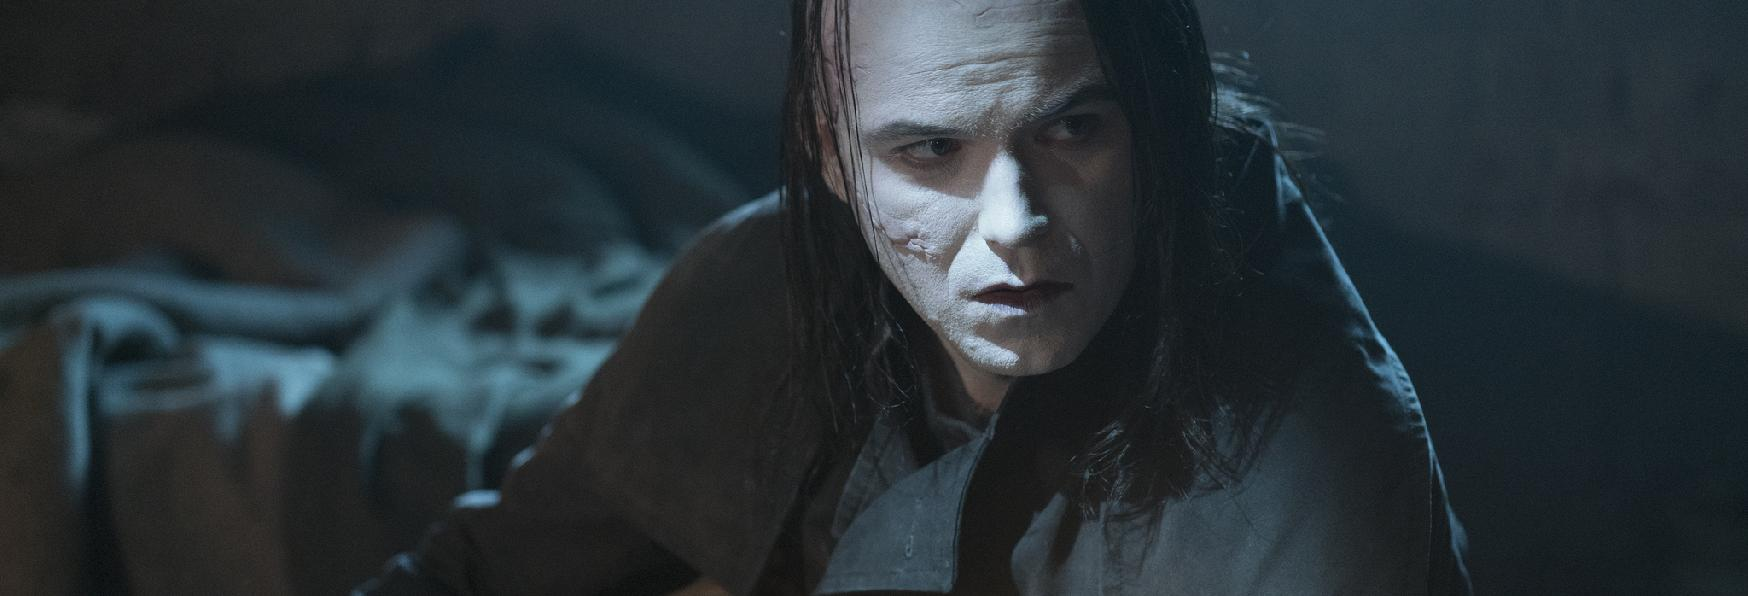 Penny Dreadful: Rory Kinnear tornerà nello Spin-off City of Angels